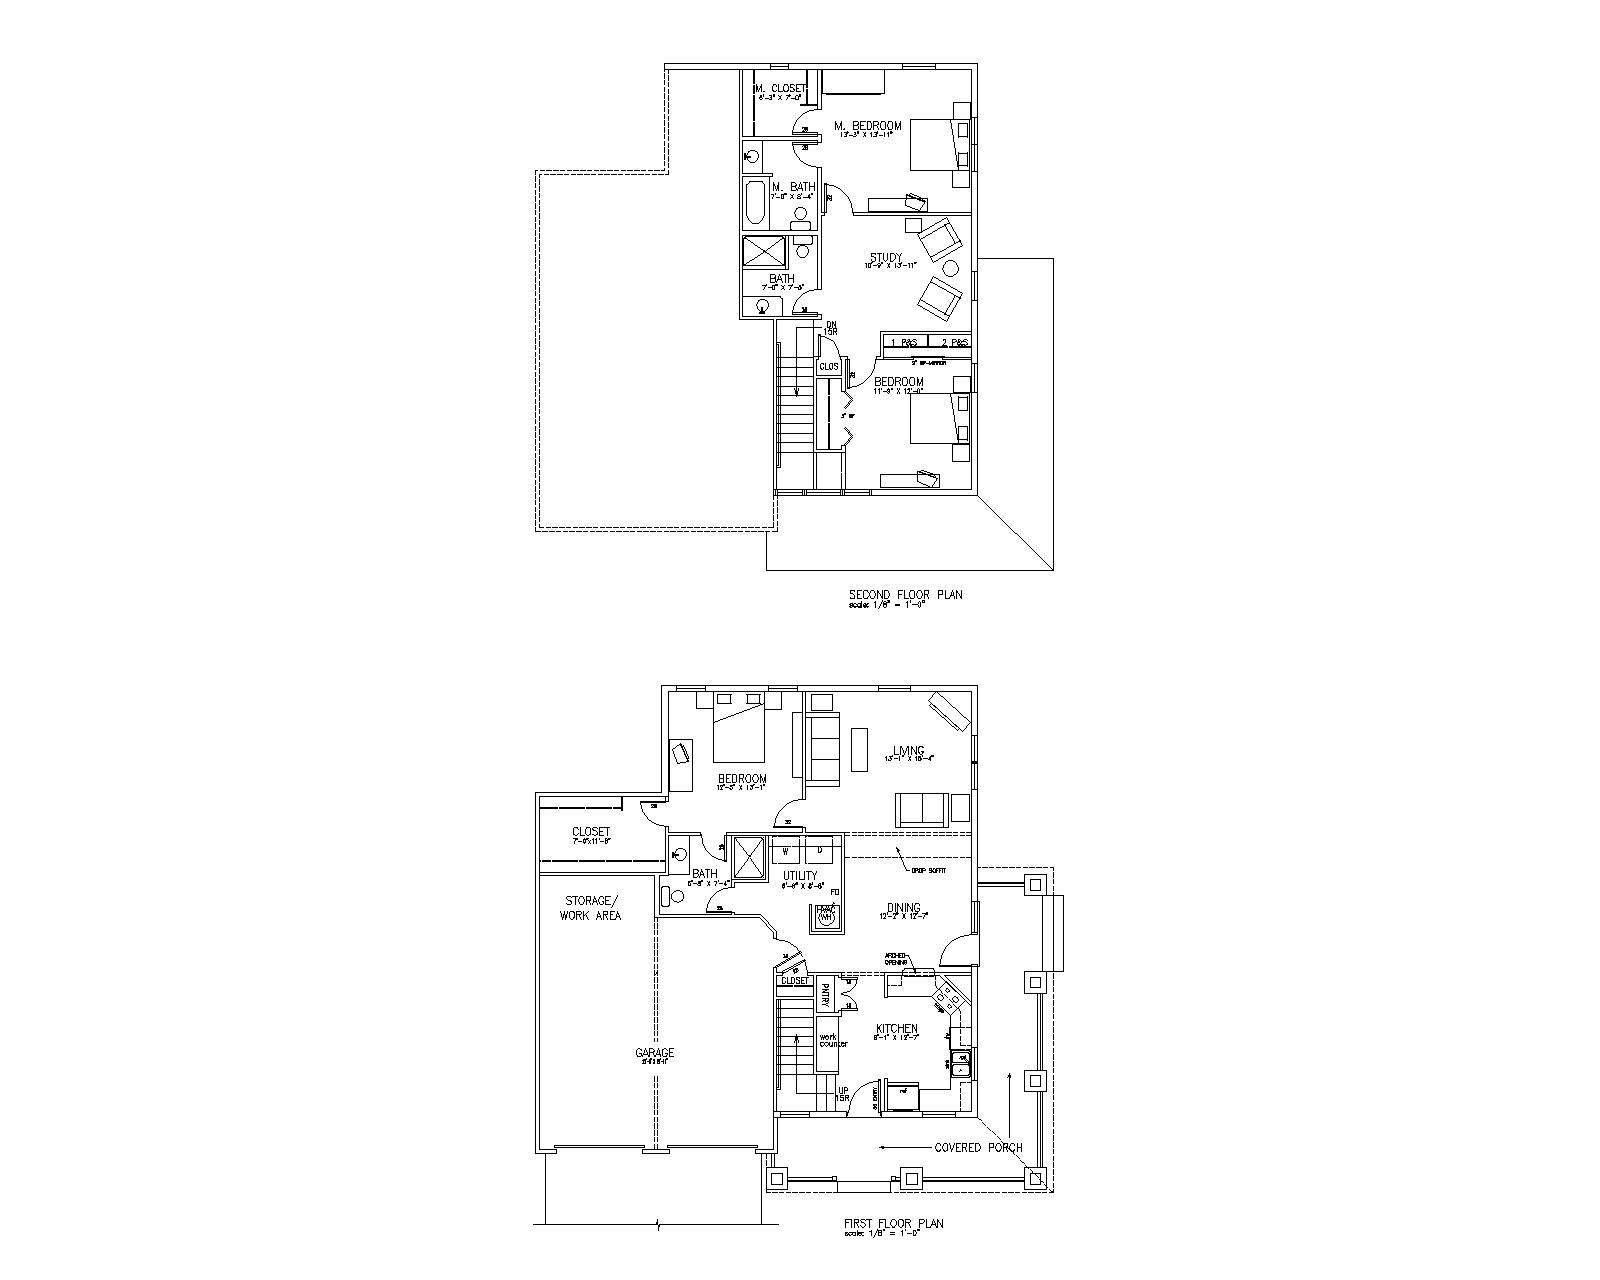 Estimate Based Your Needs Four Cottage Lots Already Reserved